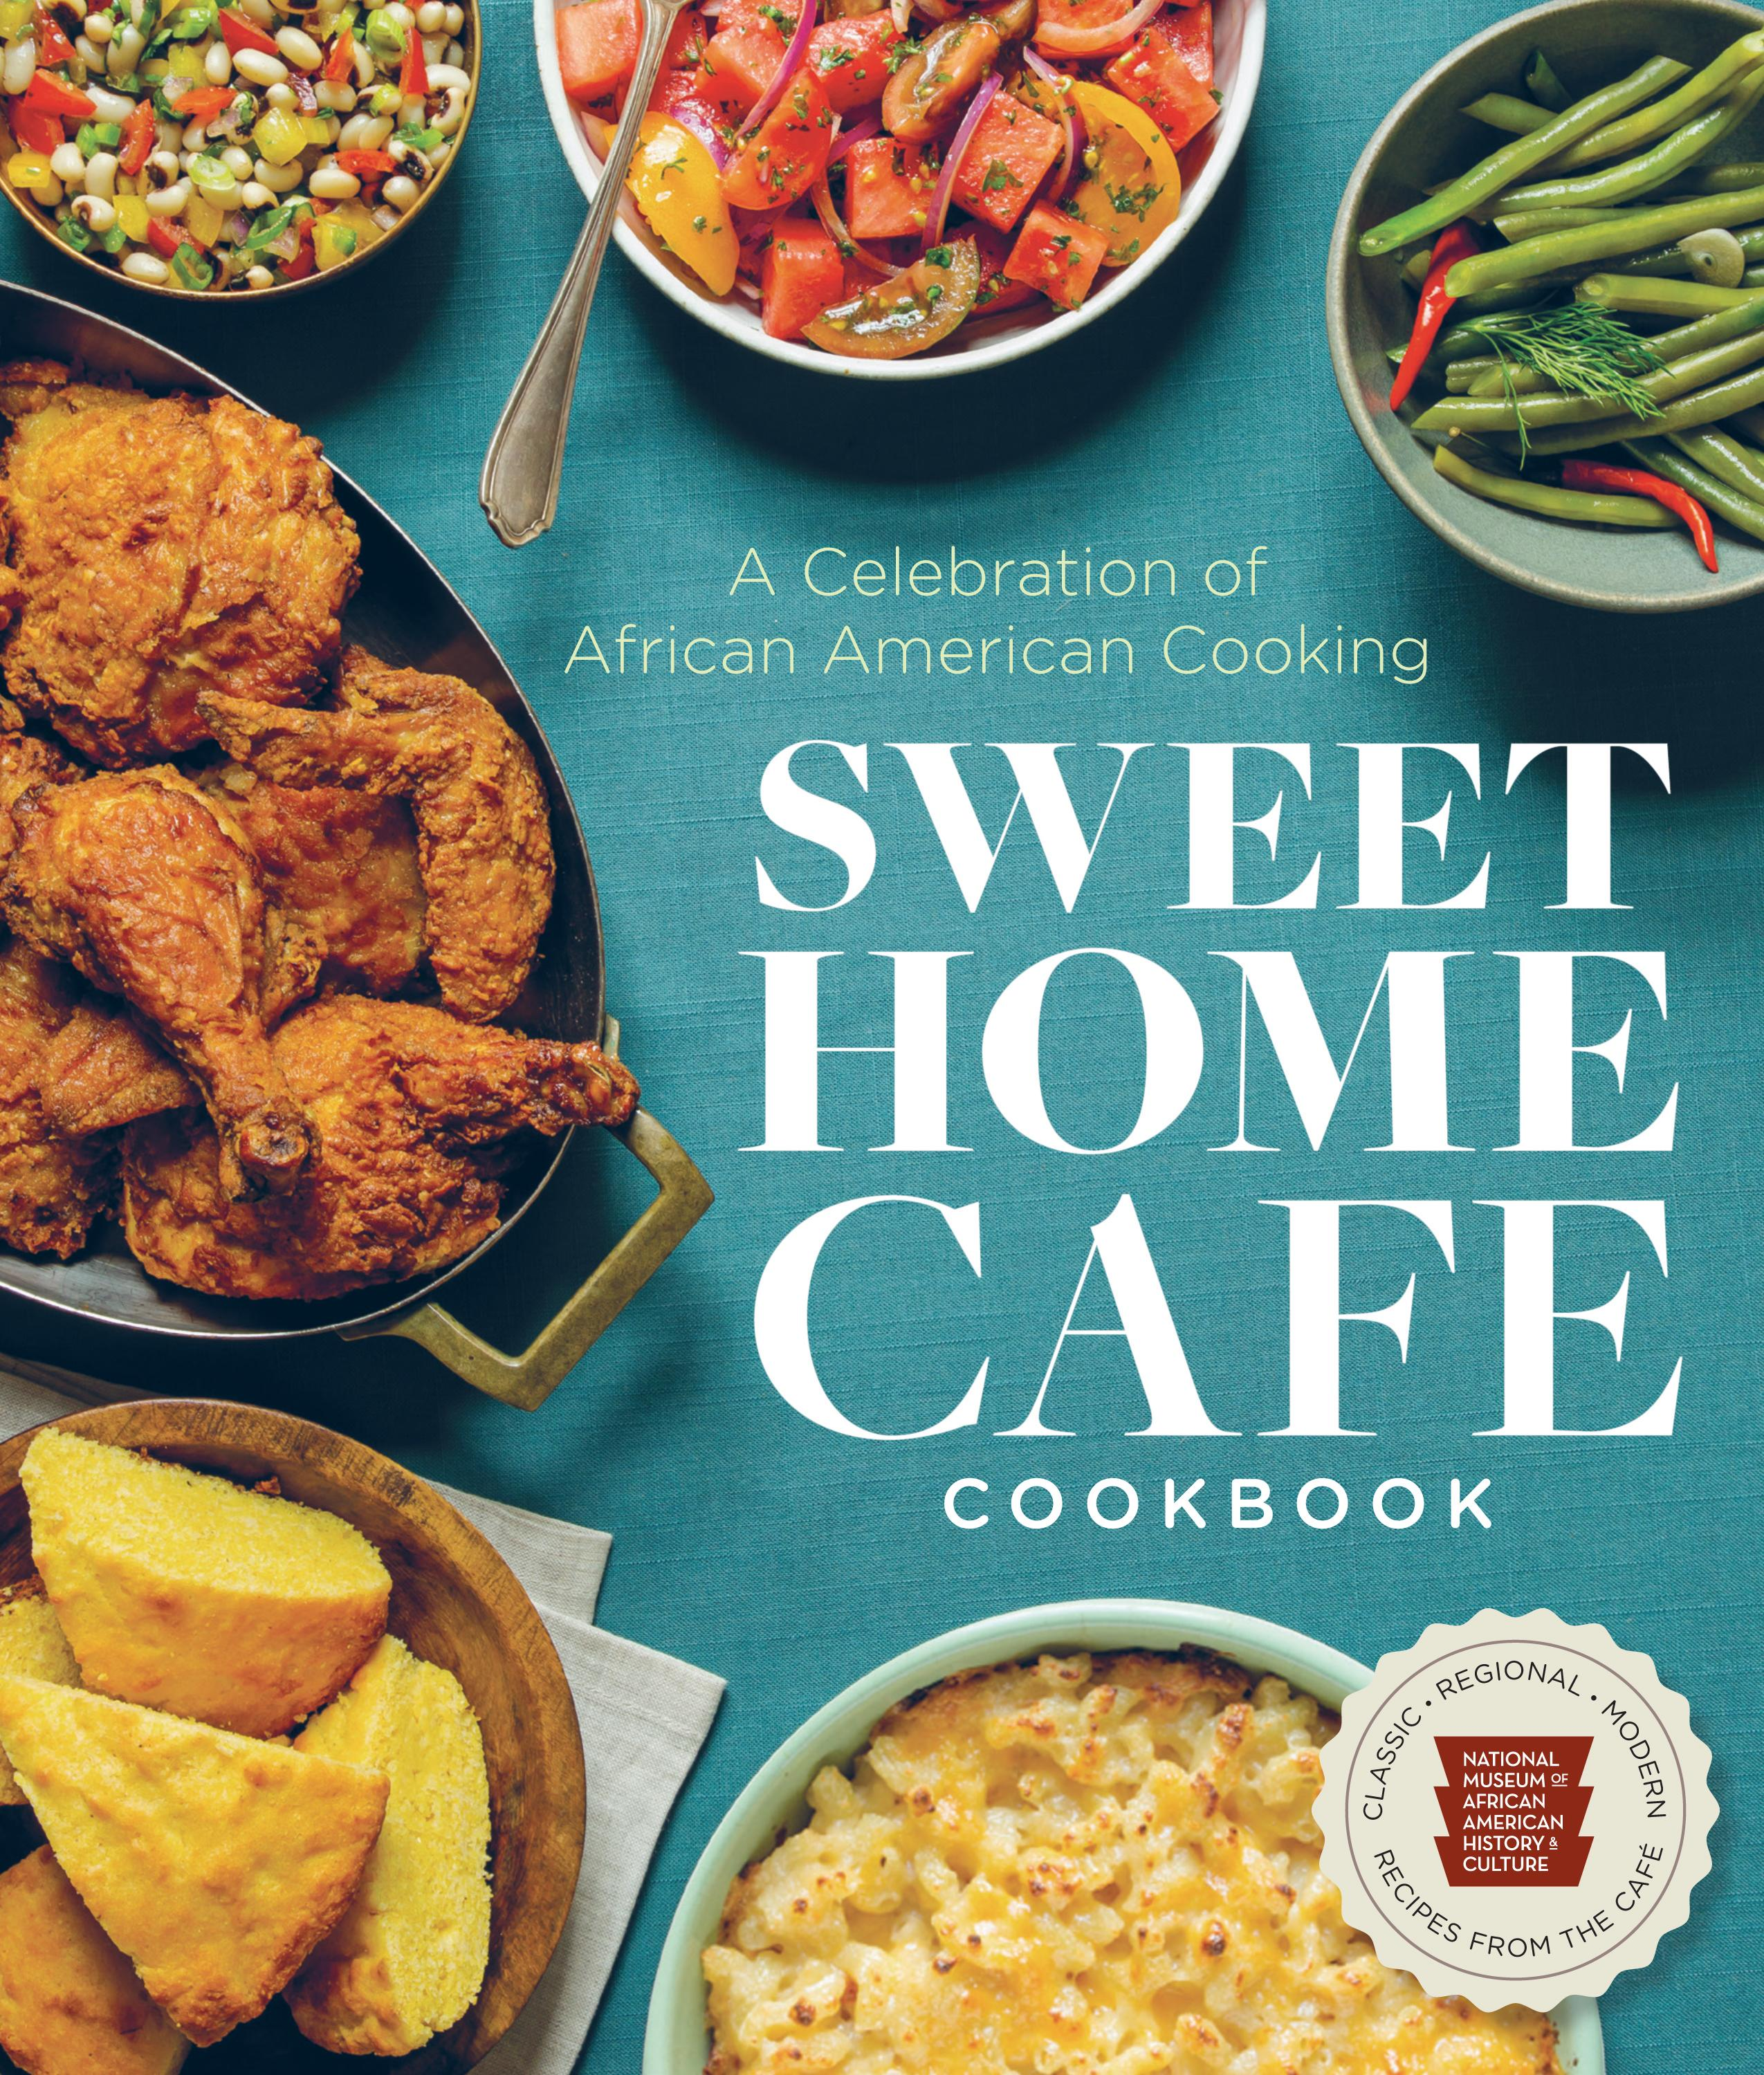 Sweet Home Cafe Cookbook from the National Museum of African American History and Culture // Price: $29.95 // Buy online // www.smithsonianstore.com // (Image: Courtesy Smithsonian Books)